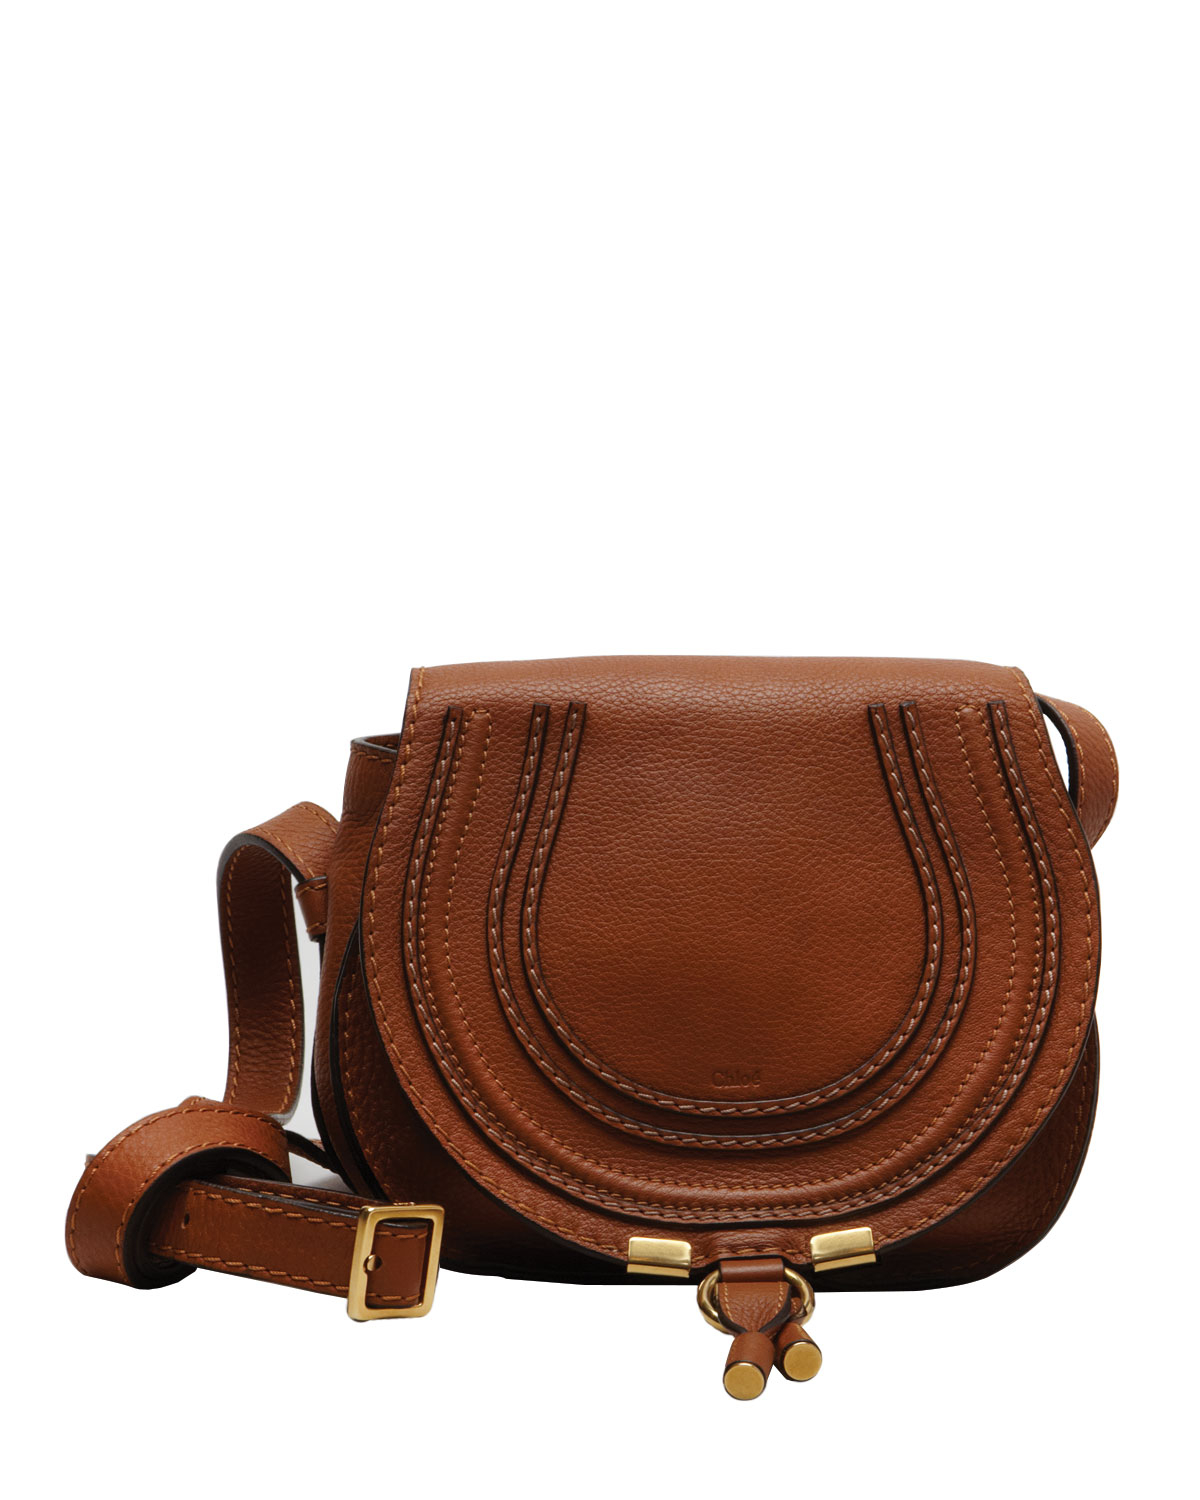 aad1fb239a Chloé Marcie Mini Leather Saddle Bag in Brown - Lyst